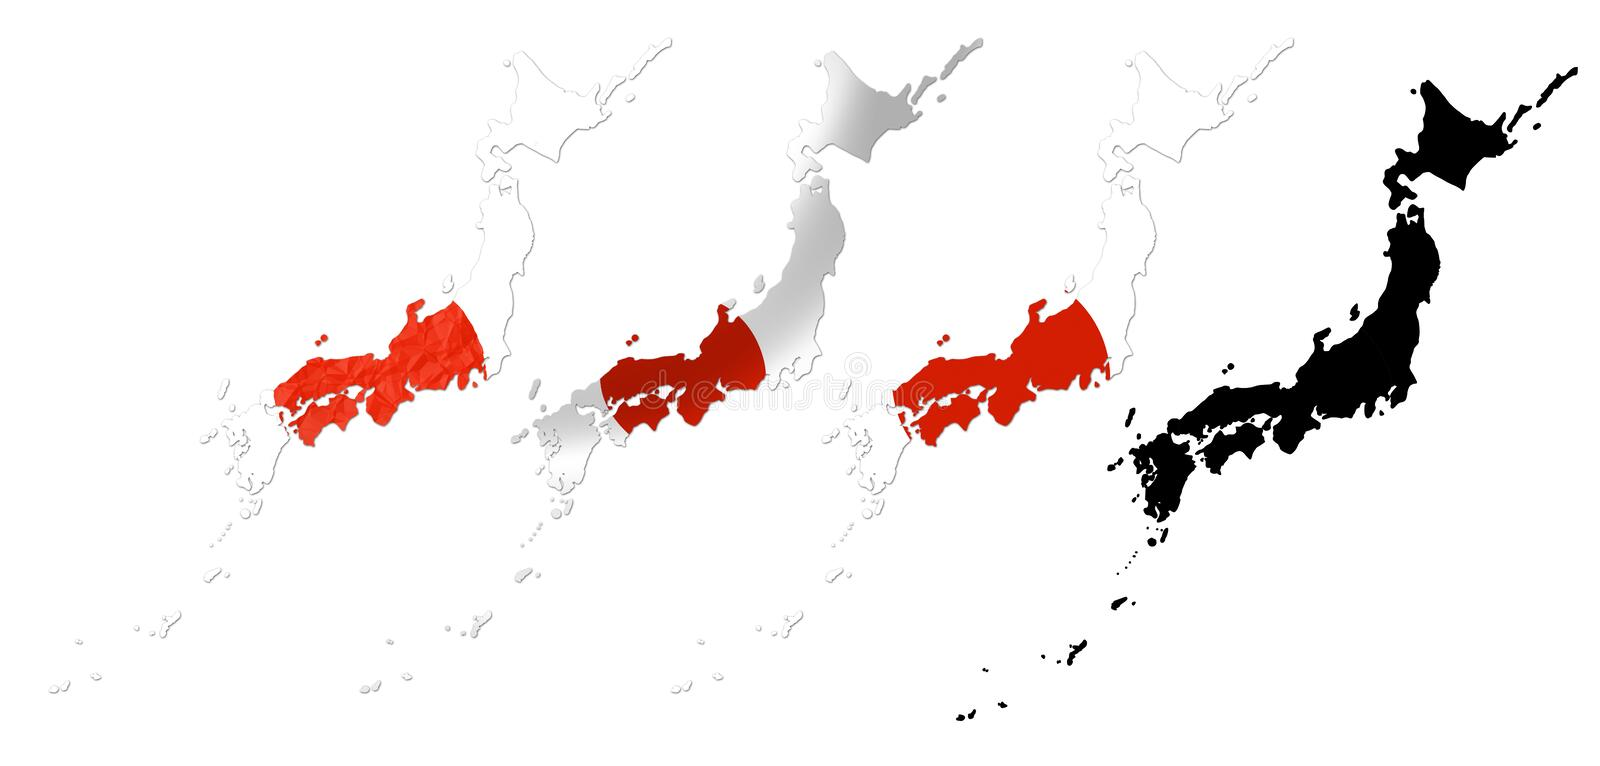 Japan Flag Over Map Collage Royalty Free Stock Image Image - Japan map flag